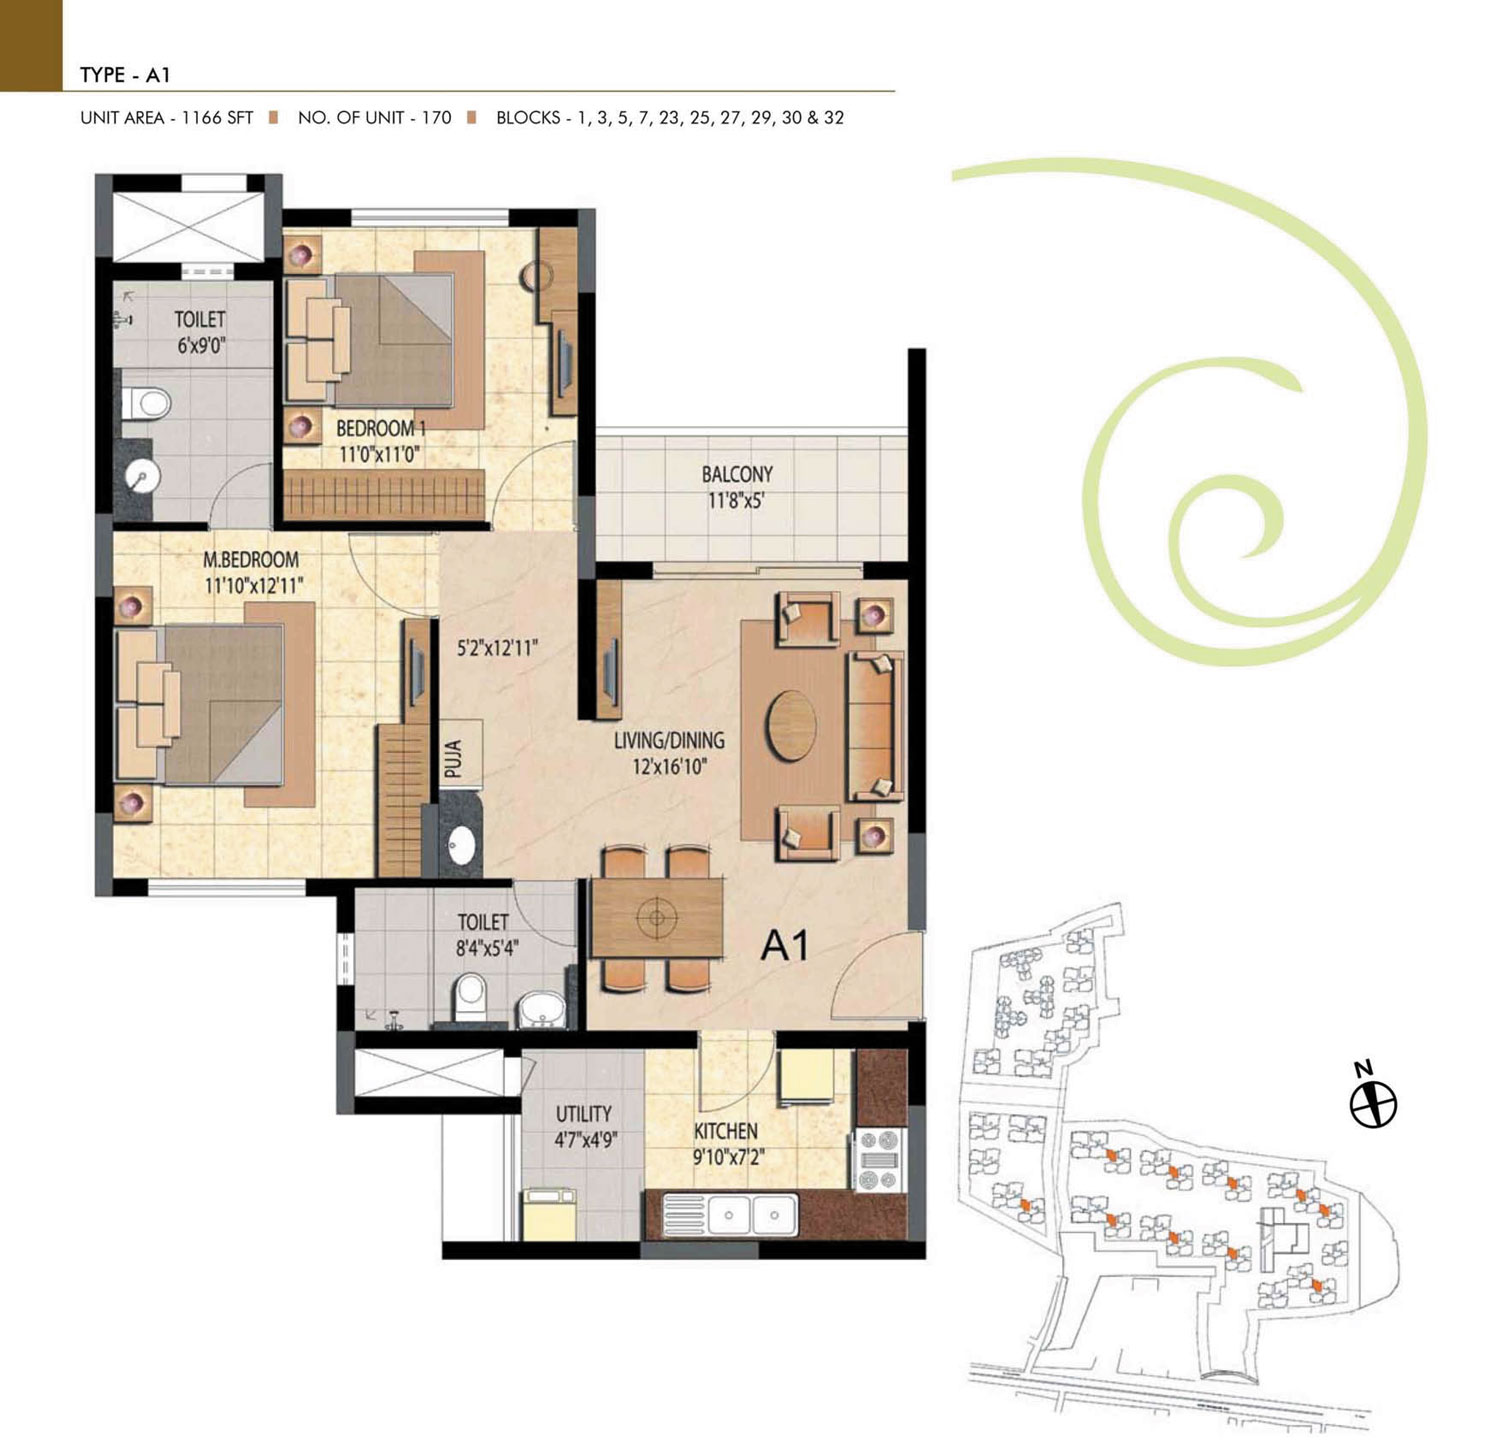 Type A1 - 2 Bed - 1166 Sq Ft